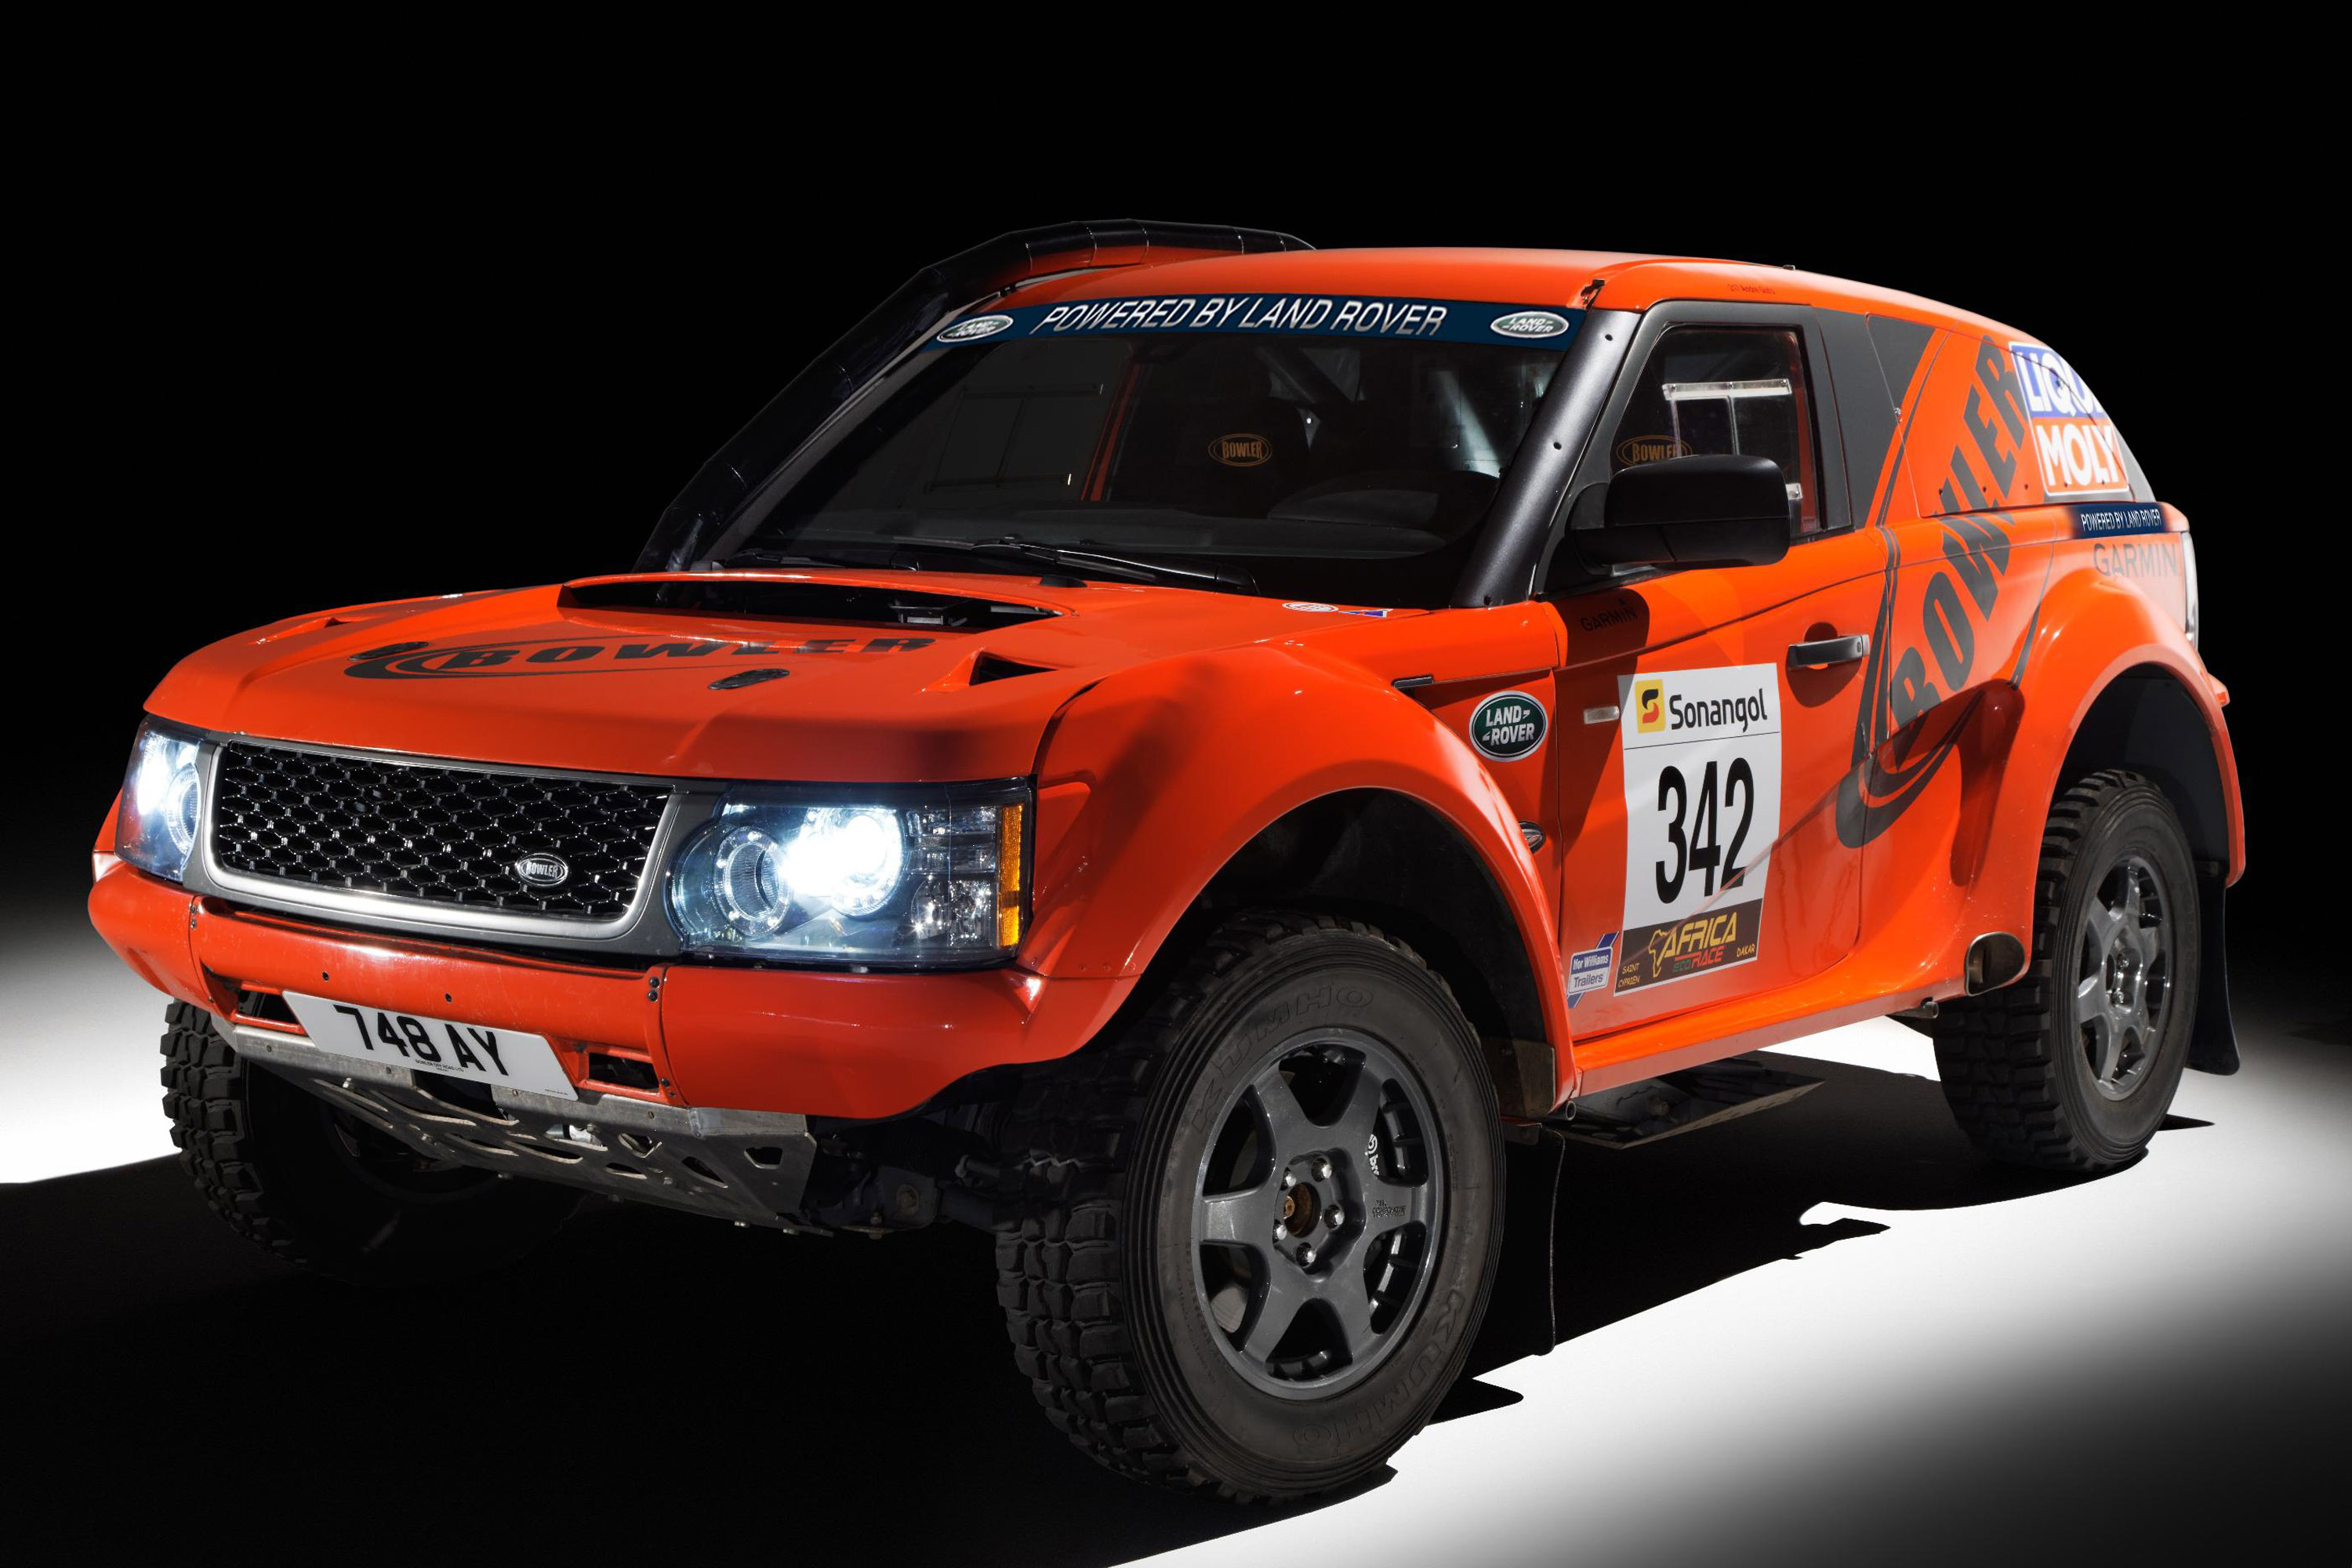 2012 Bowler EXR Rally Car By Land Rover Review - Top Speed